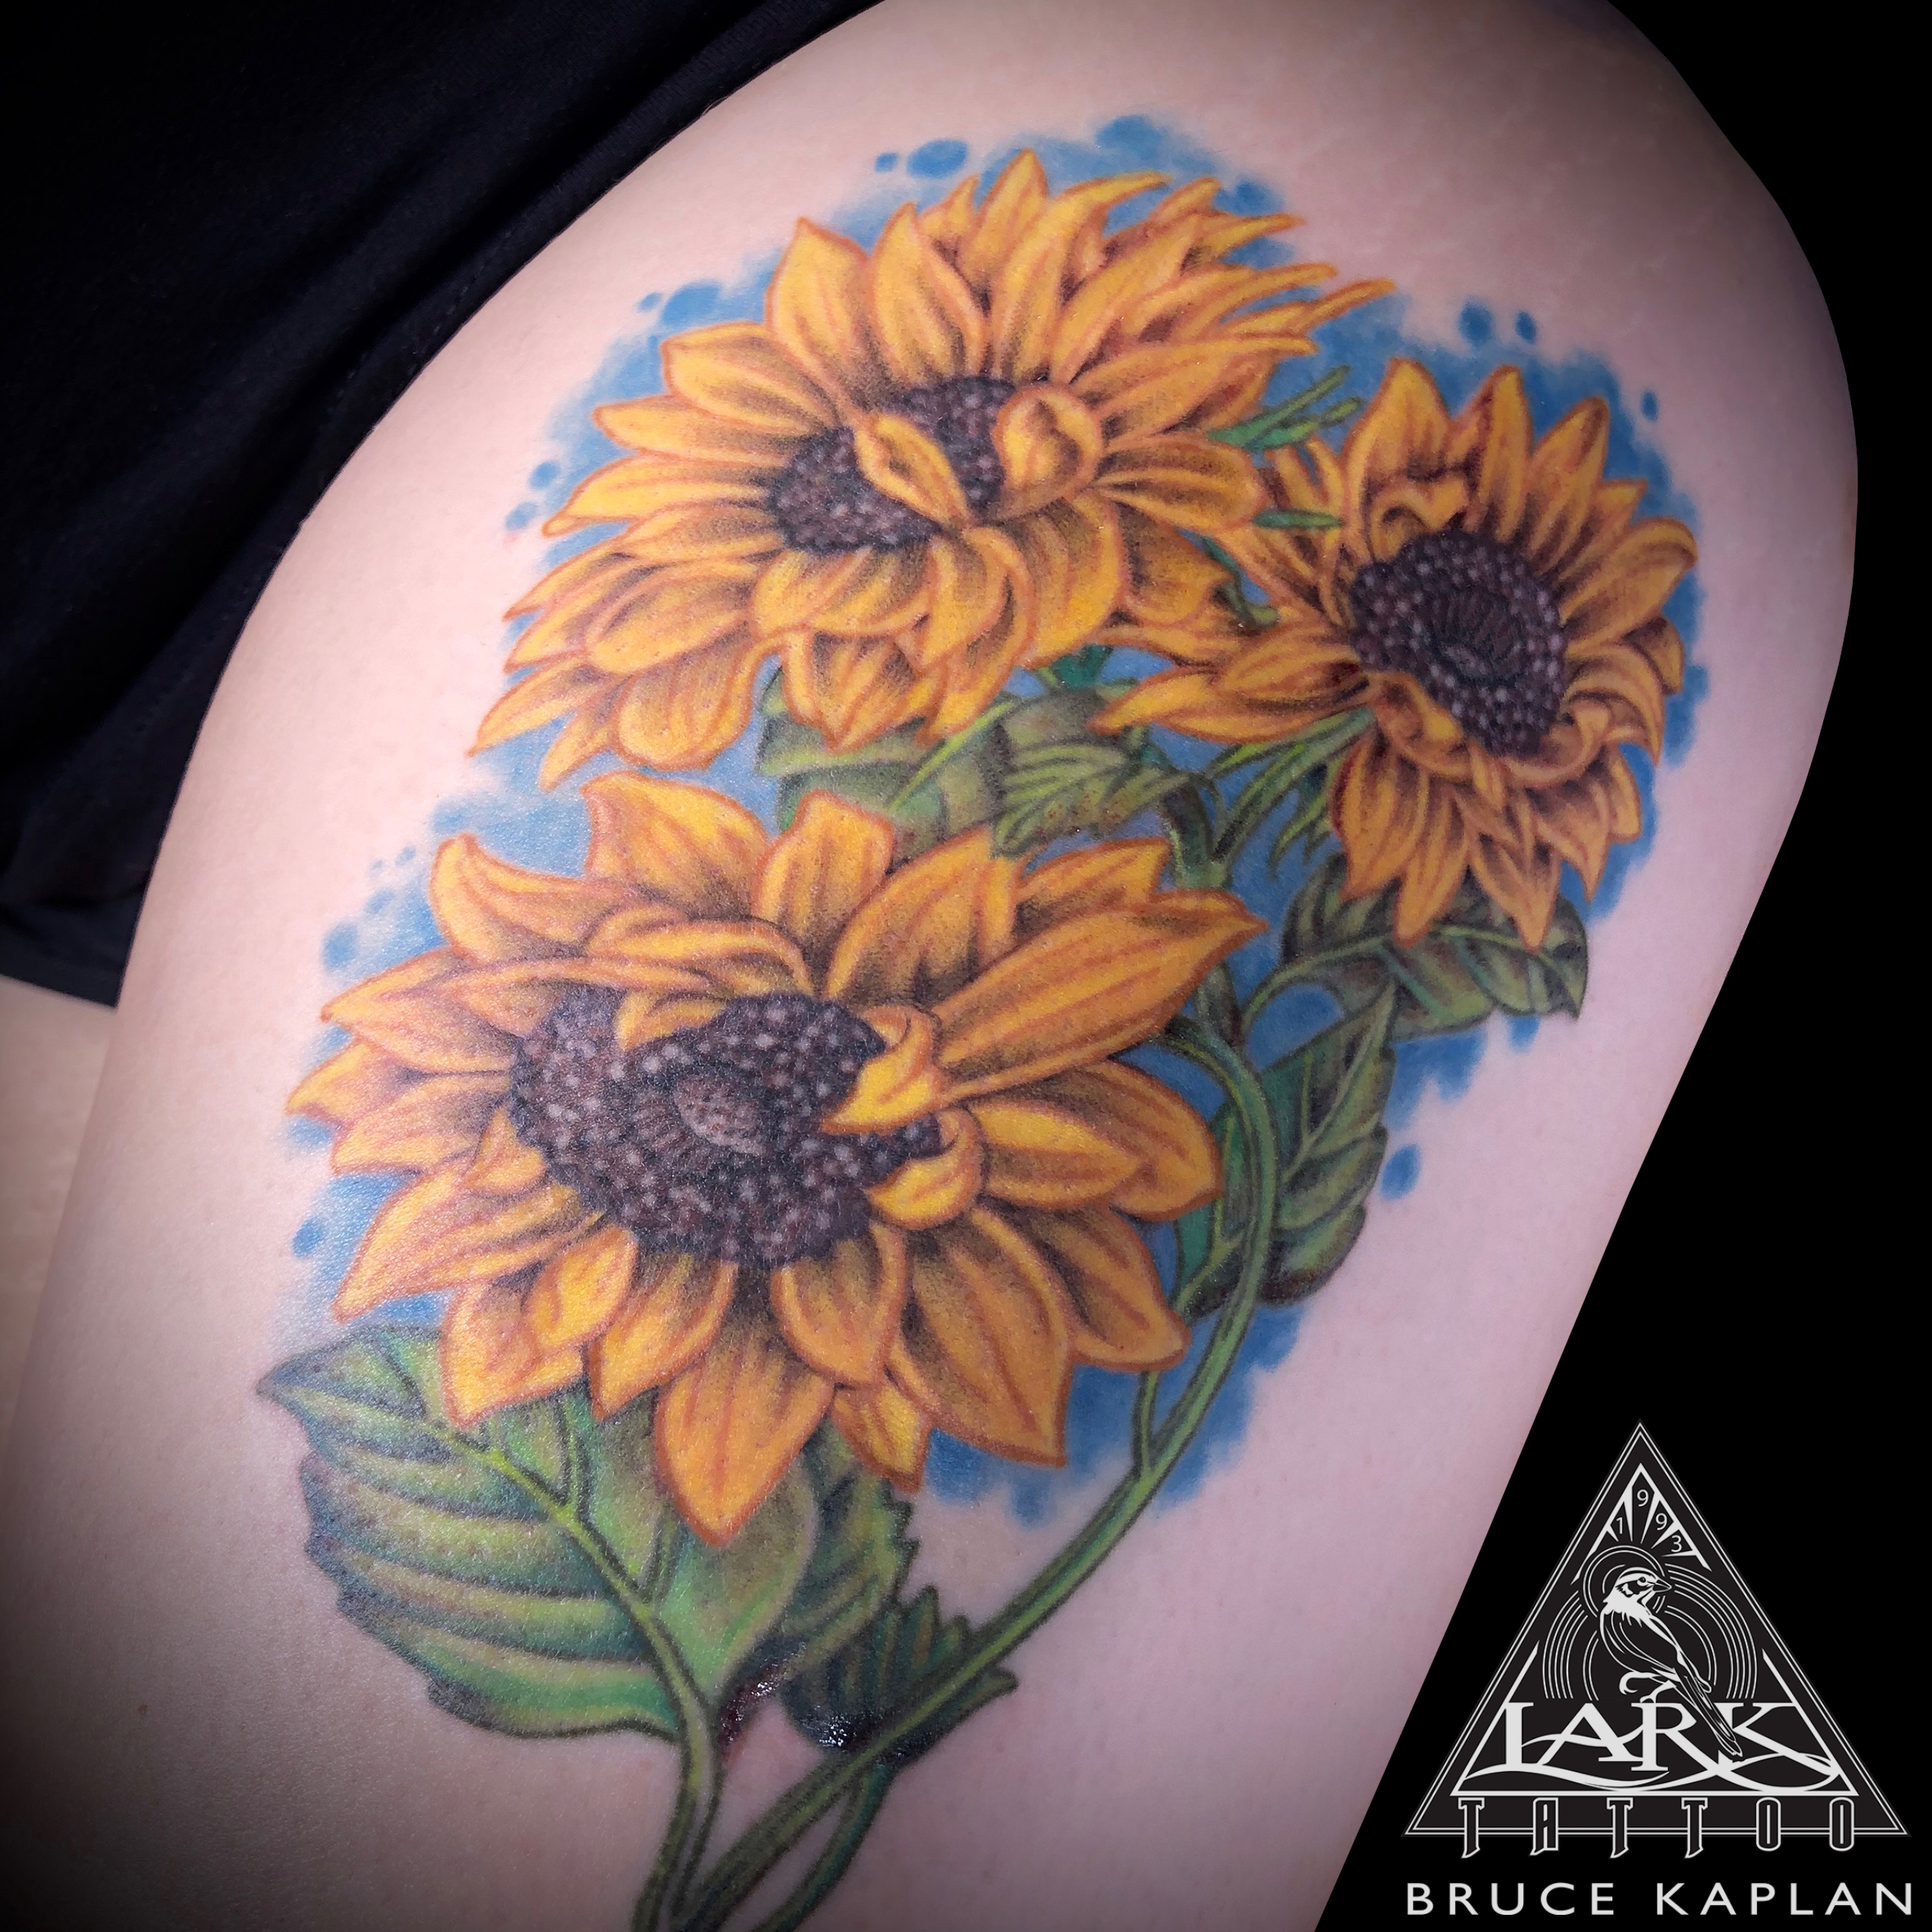 LarkTattoo, BruceKaplan, BruceKaplanTattoo, BruceKaplanLarkTattoo, Tattoo, Tattoos, SunFlowers, SunFlowersTattoo, SunFlower, SunFlowerTattoo, Flowers, FlowersTattoo, Flower, FlowerTattoo, ColorTattoo, TattooArtist, Tattoist, Tattooer, LongIslandTattooArtist, LongIslandTattooer, LongIslandTattoo, TattooOfTheDay, Tat, Tats, Tatts, Tatted, Inked, Ink, TattooInk, AmazingInk, AmazingTattoo, BodyArt, LarkTattooWestbury, Westbury, LongIsland, NY, NewYork, USA, Art, Tattedup, InkedUp, LarkTattoos